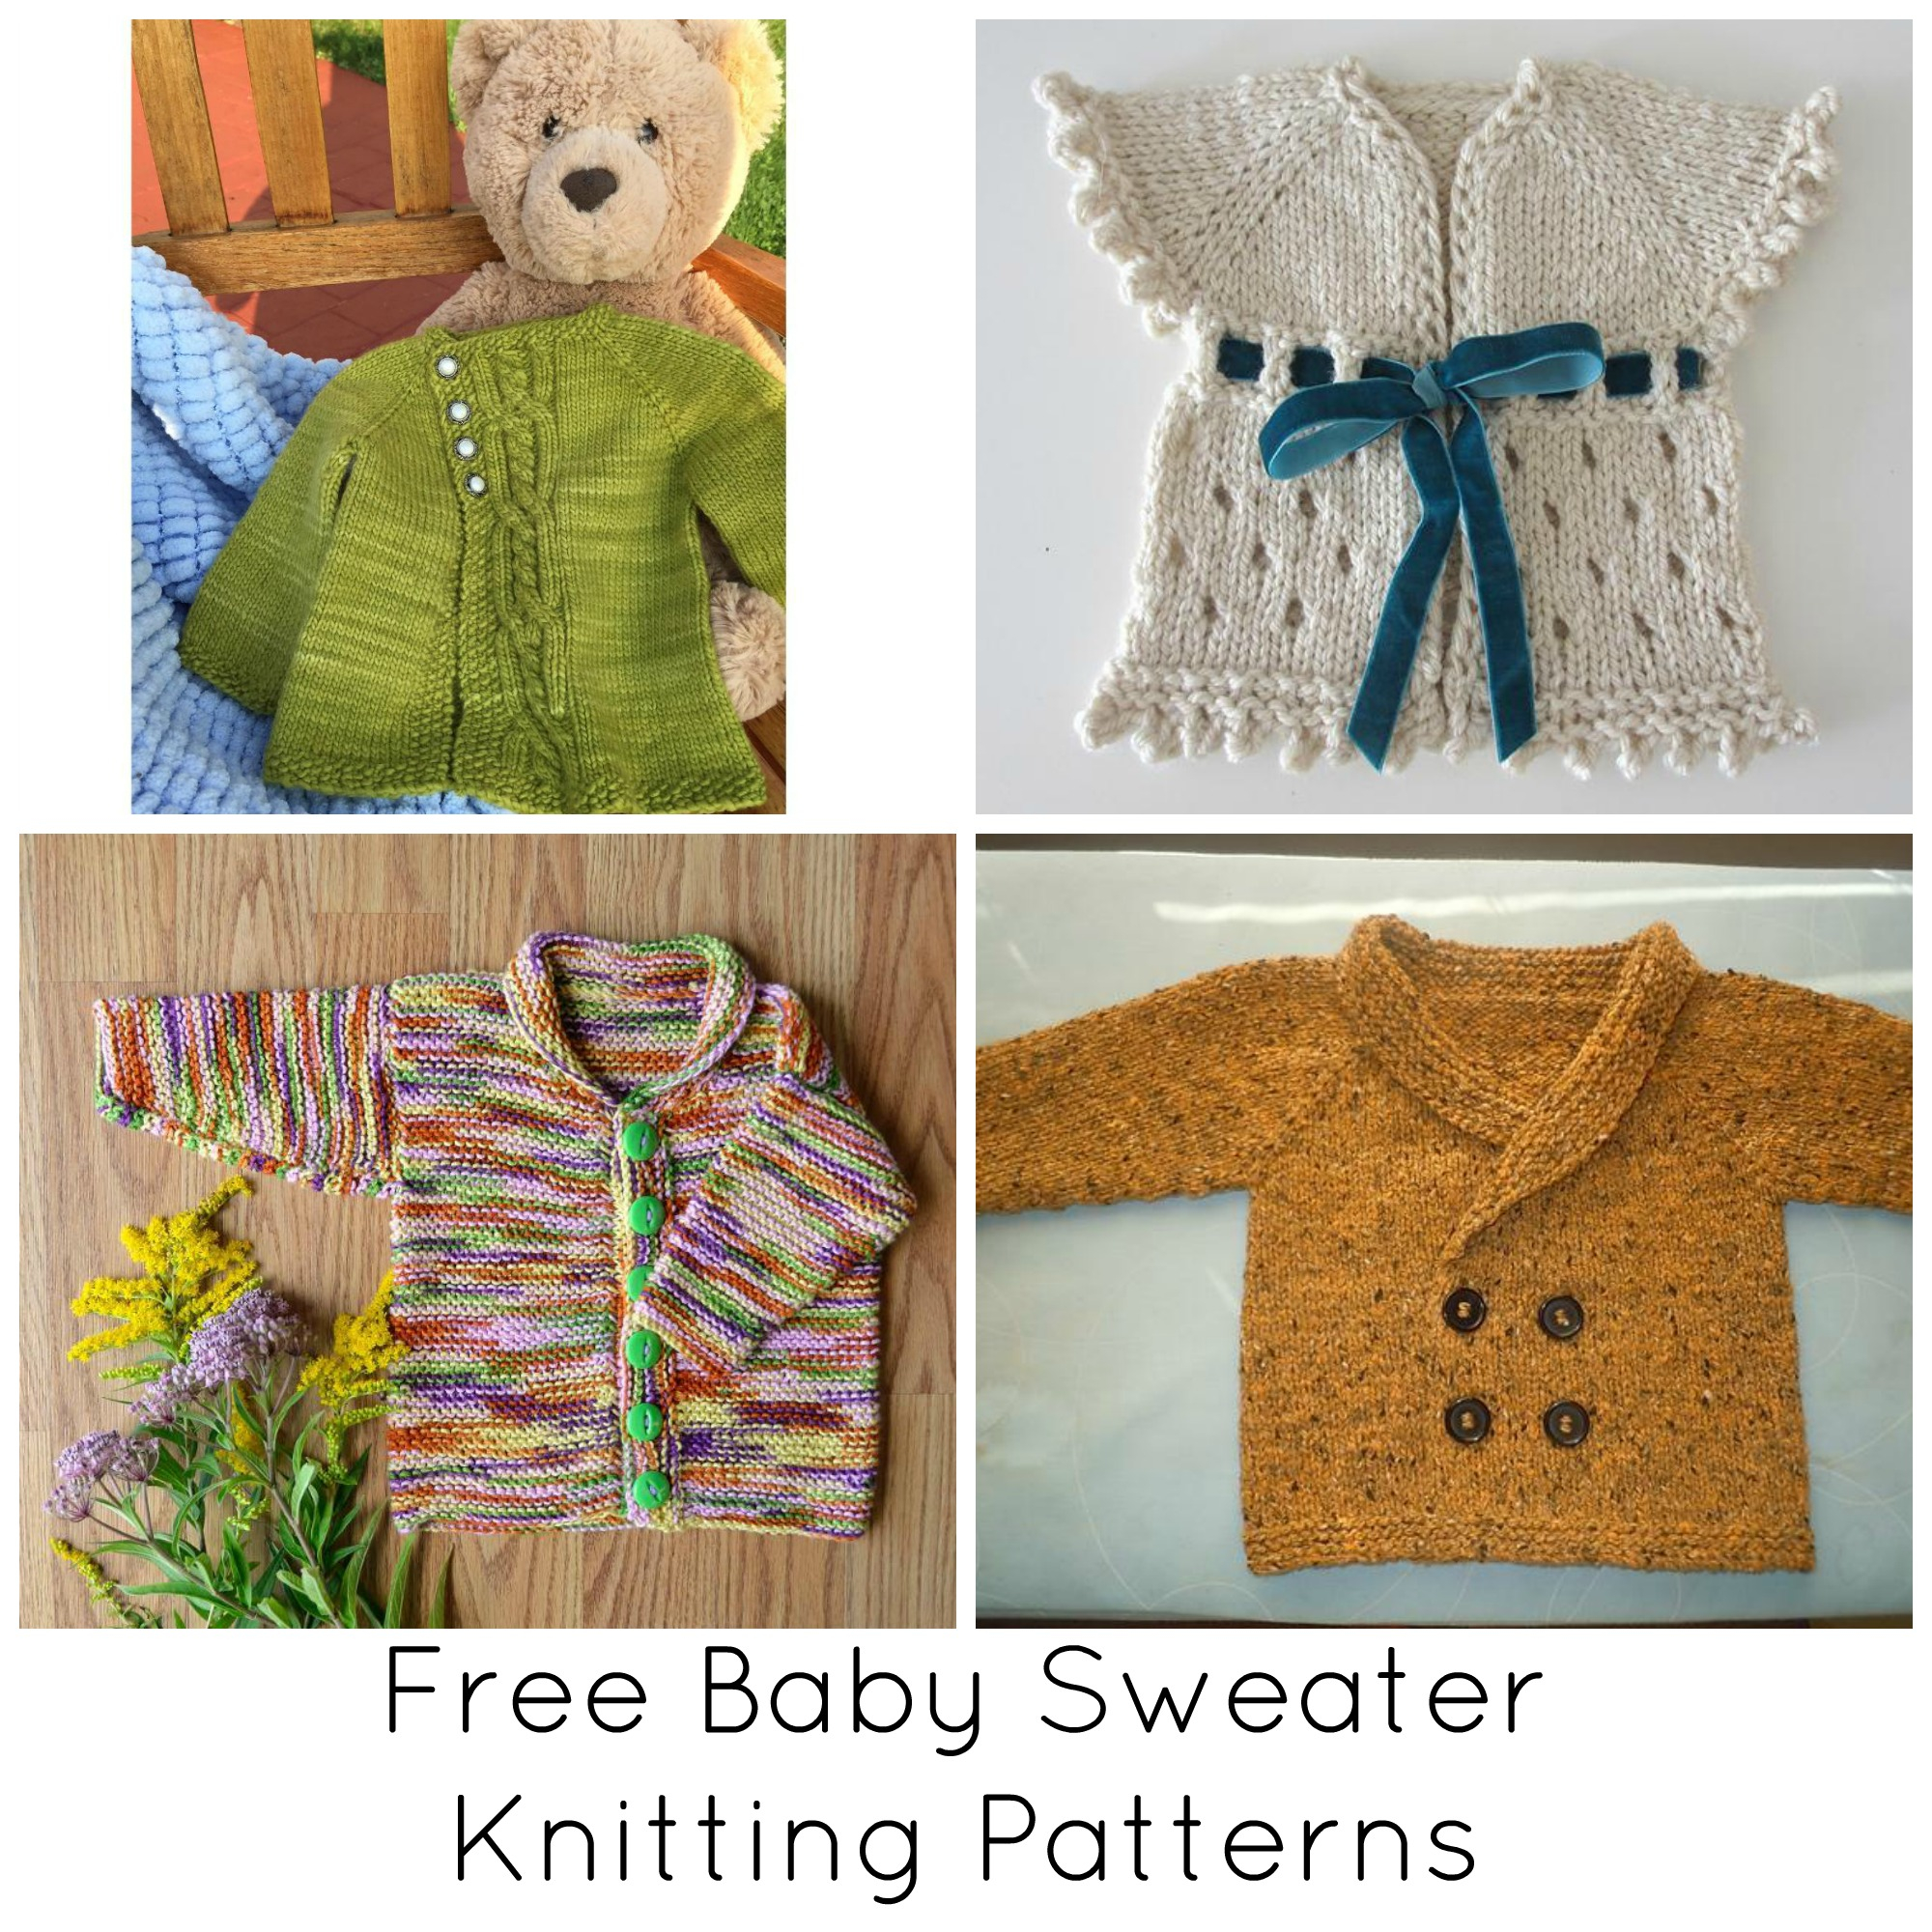 Knitted Childrens Sweaters Free Patterns Our Favorite Free Ba Sweater Knitting Patterns